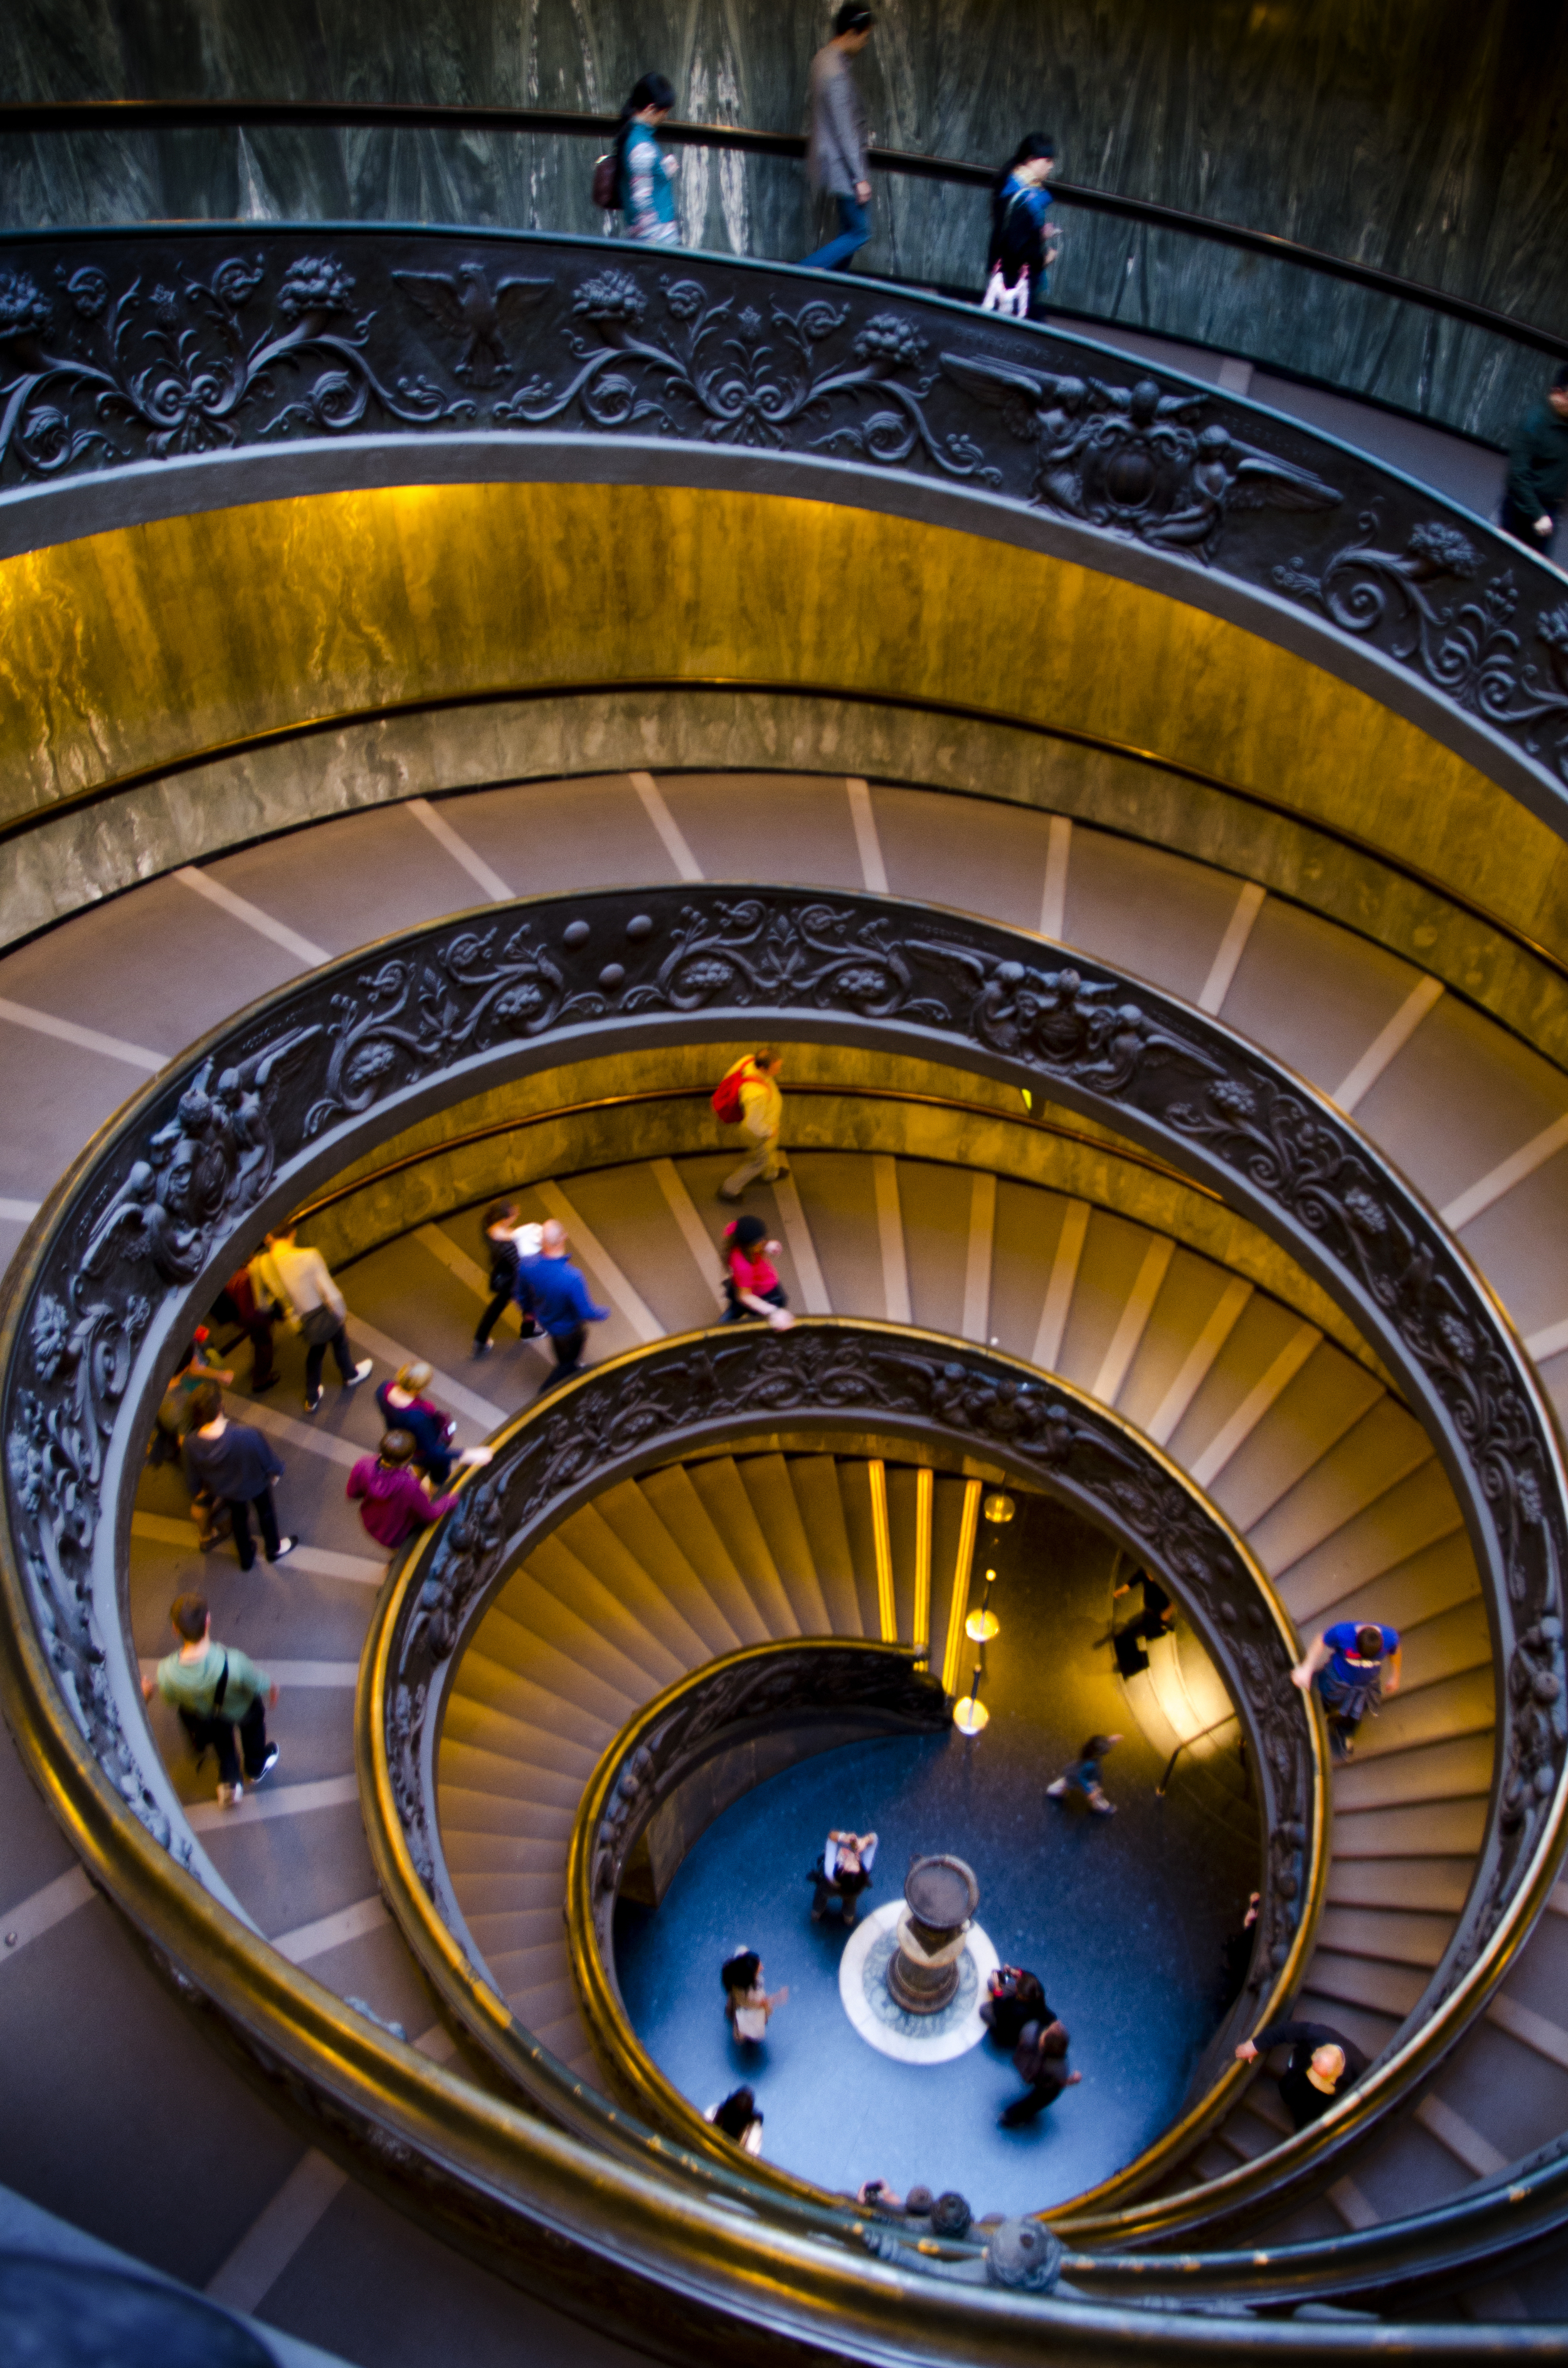 This winding pathleads to the exit of the Vatican Museums,spiralingdownwards on a shallow slope, causing patrons to tread carefully on the steps.